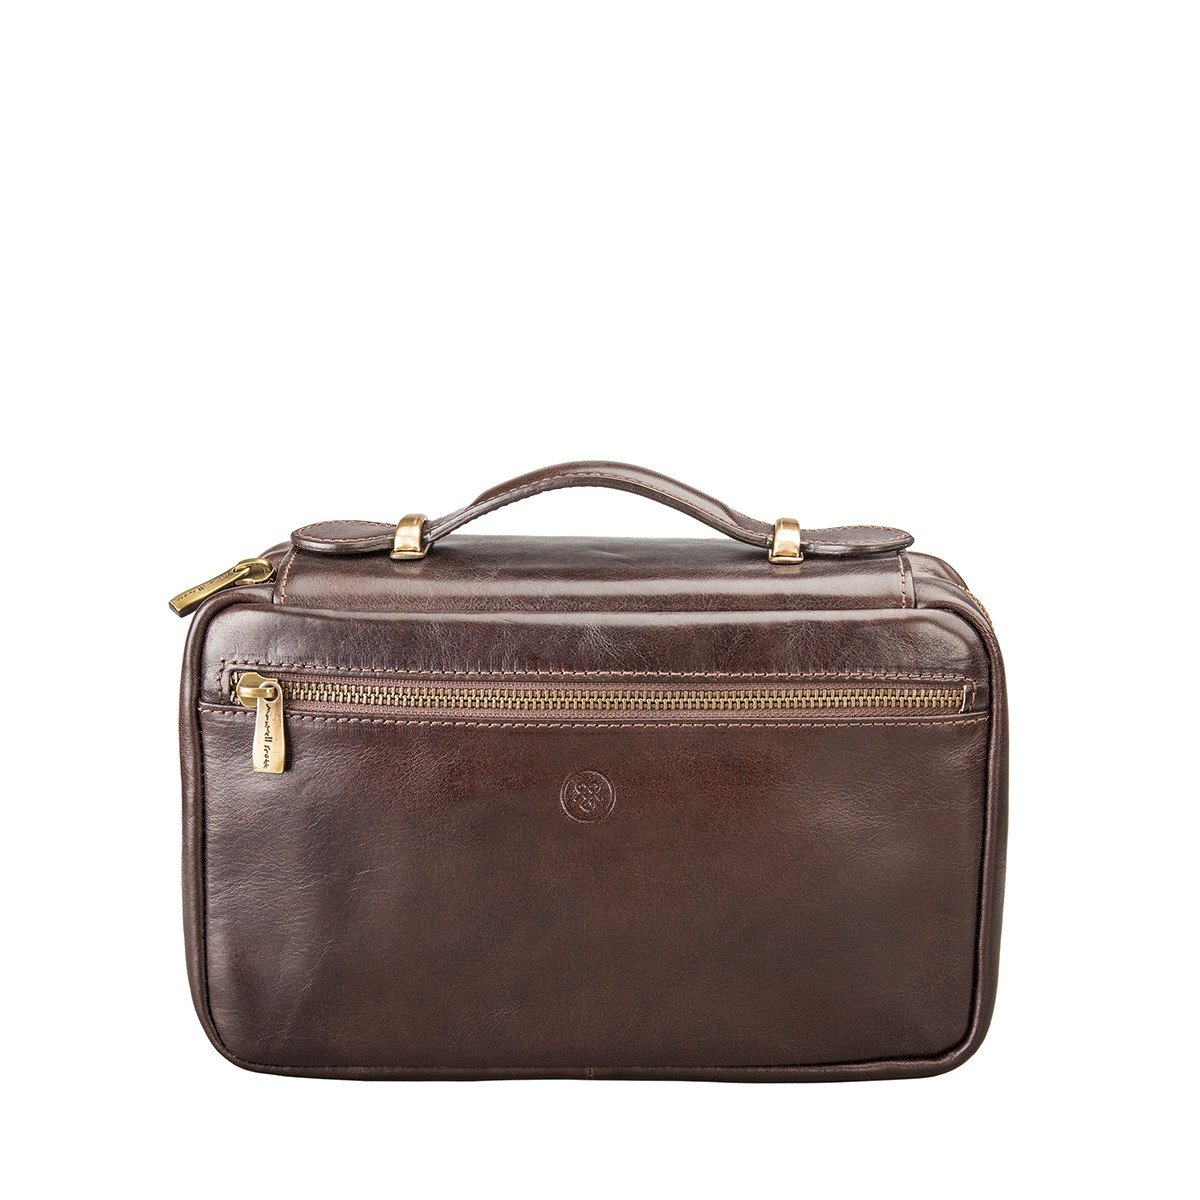 Maxwell Scott Personalized Luxury Brown Leather Makeup Case (The Cascina) - One Size